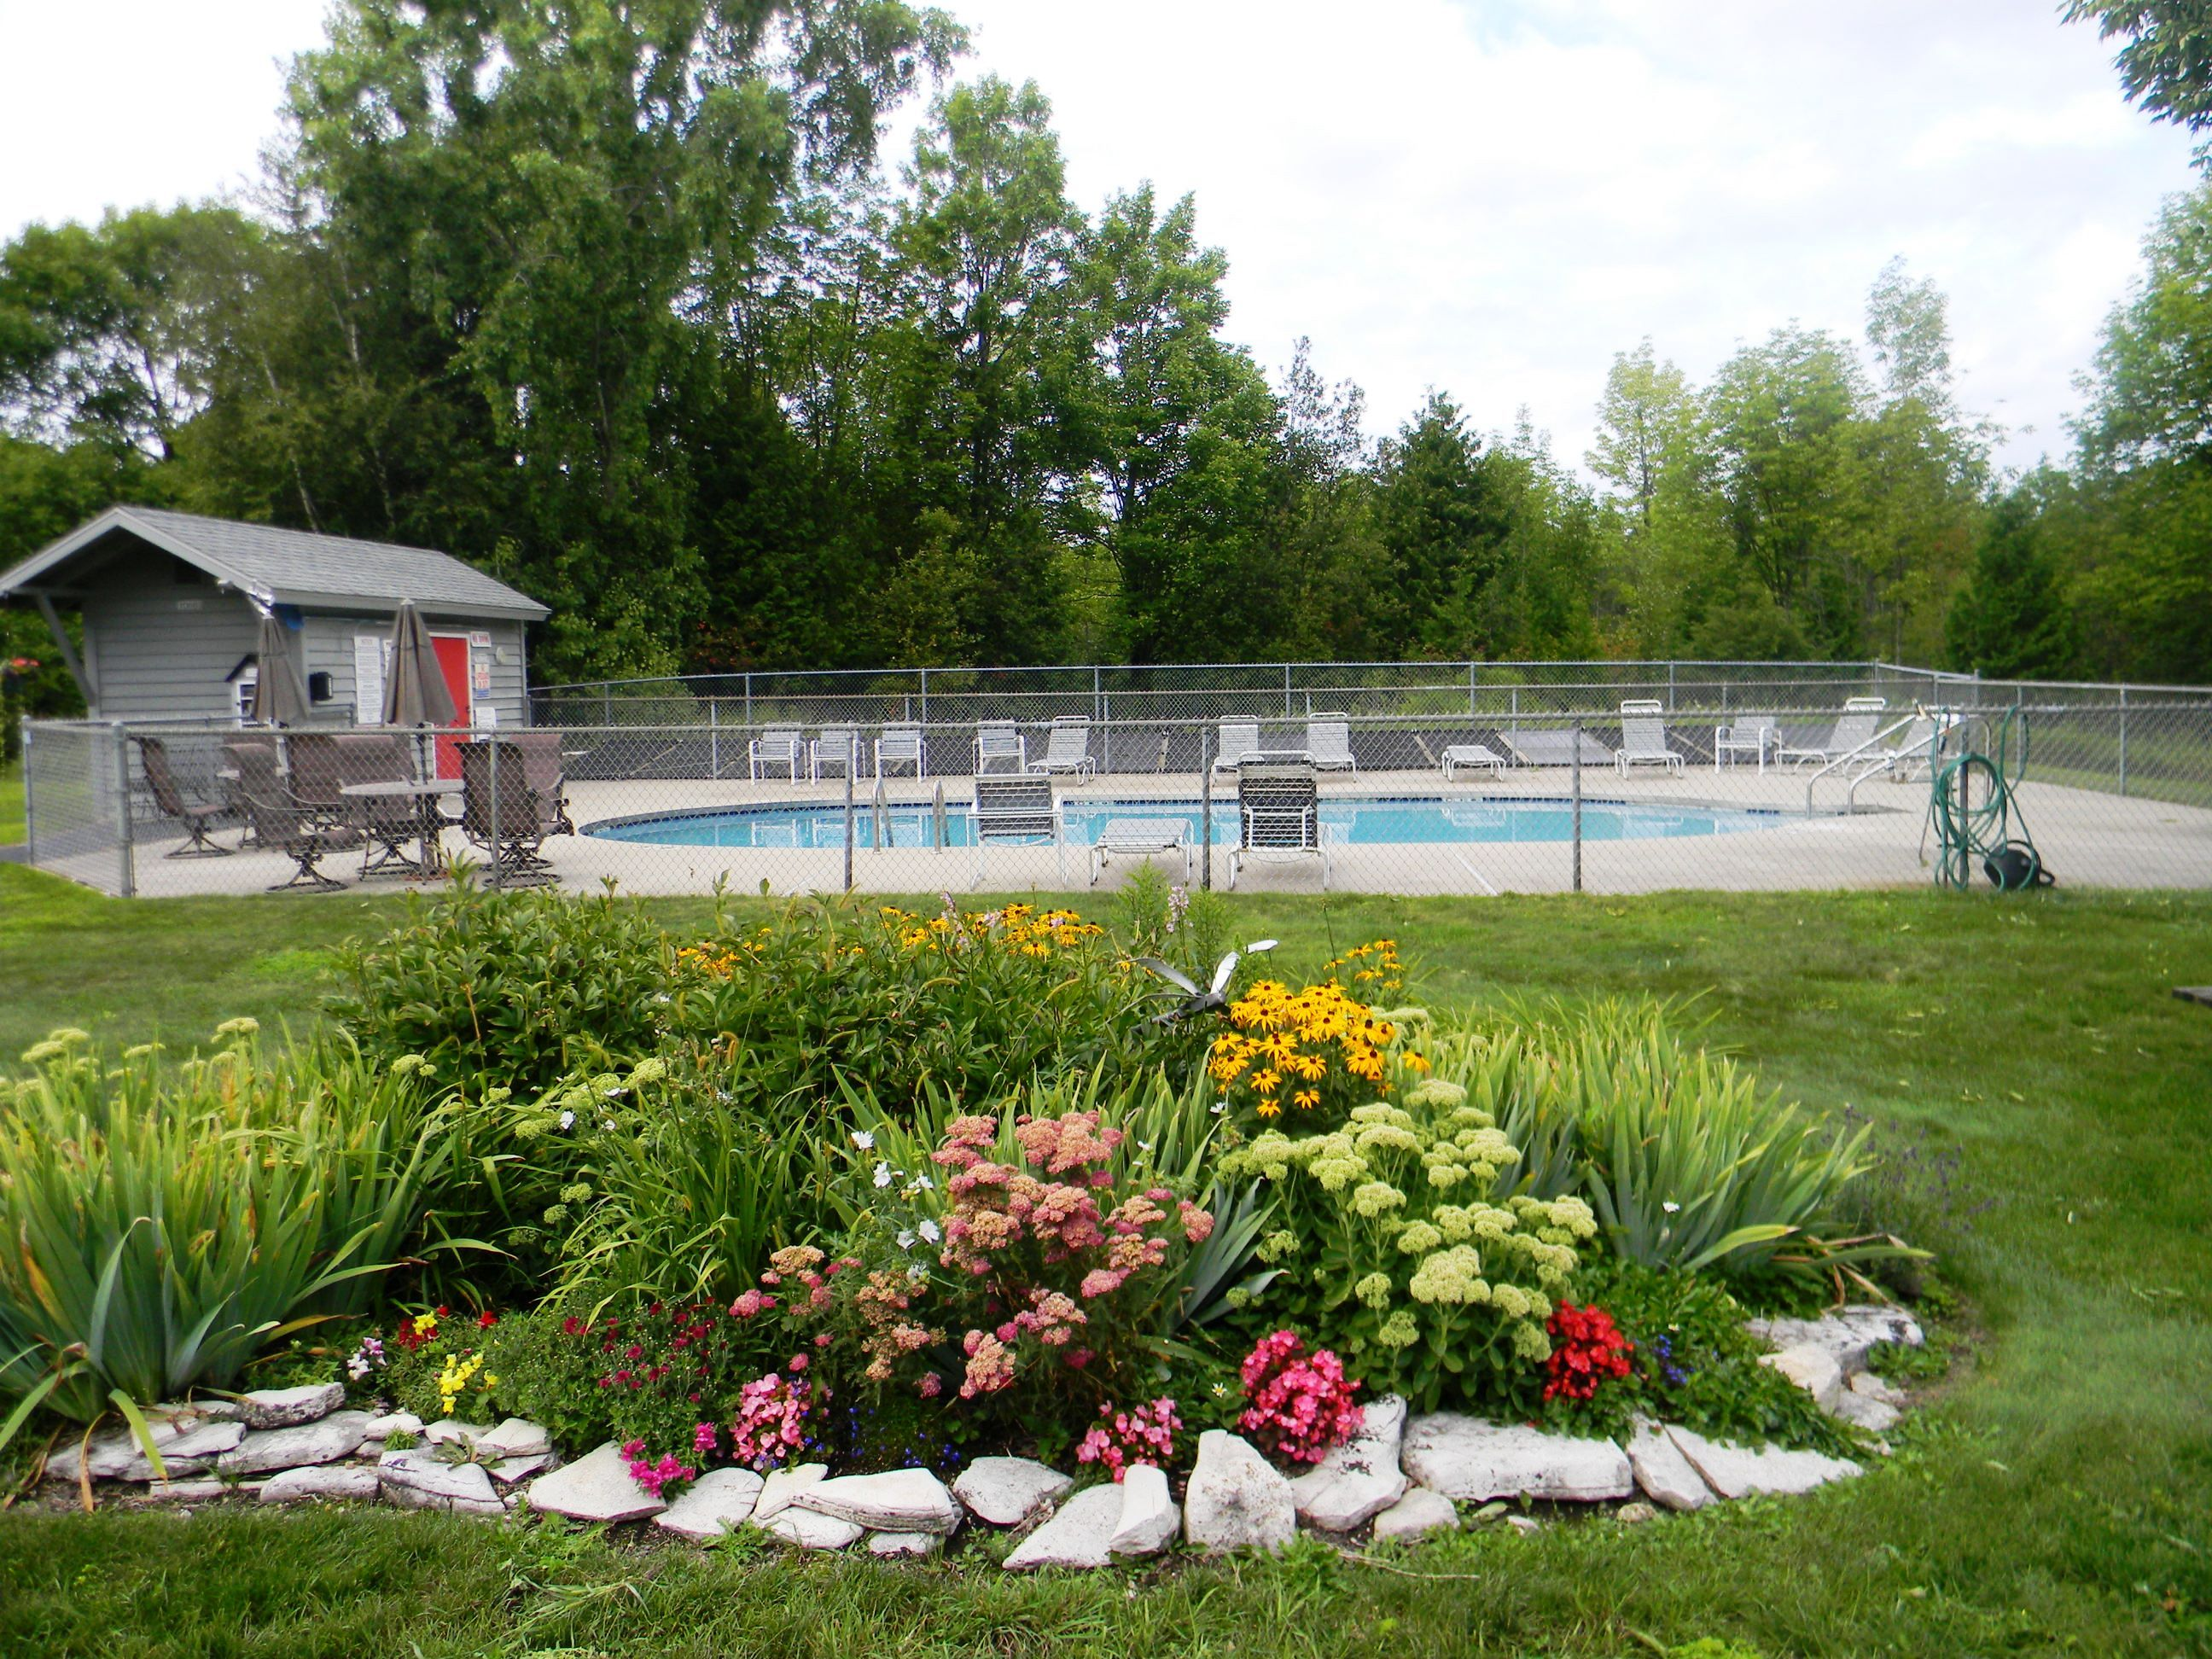 Door County Condos for sale with a pool